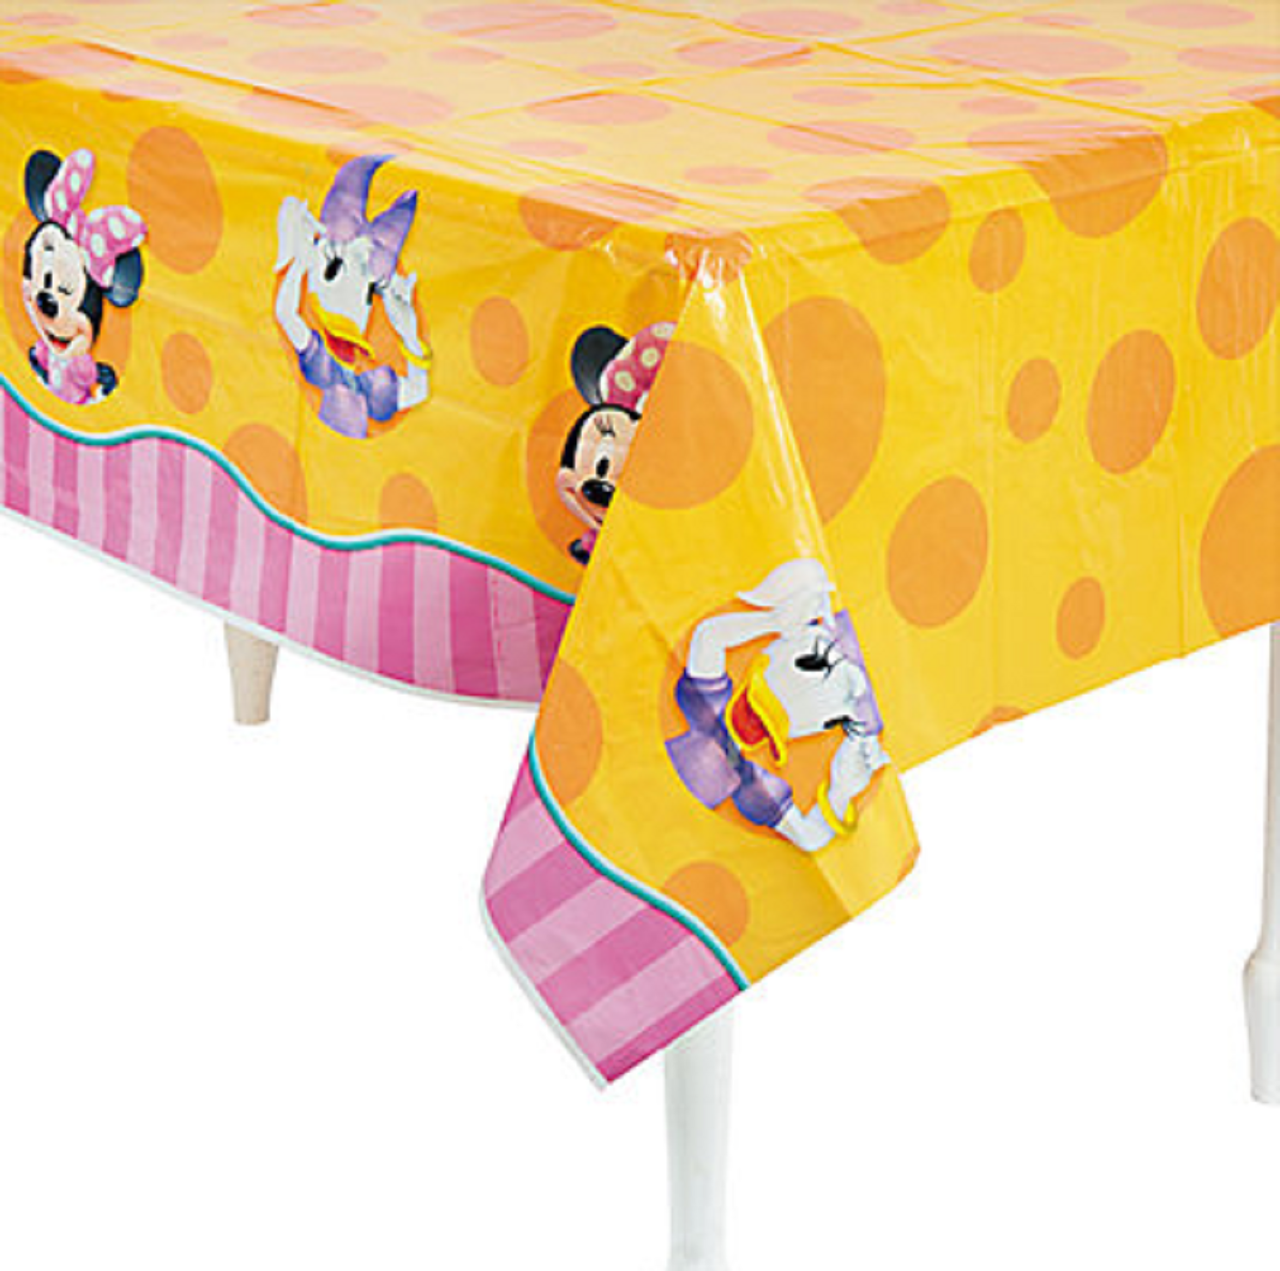 Minnie Mouse Plastic Tablecover Table Cover Tablecloth - Orange  sc 1 st  Partytoyz & Amscan Plastic Minnie Mouse Table Cover  PartyToyz